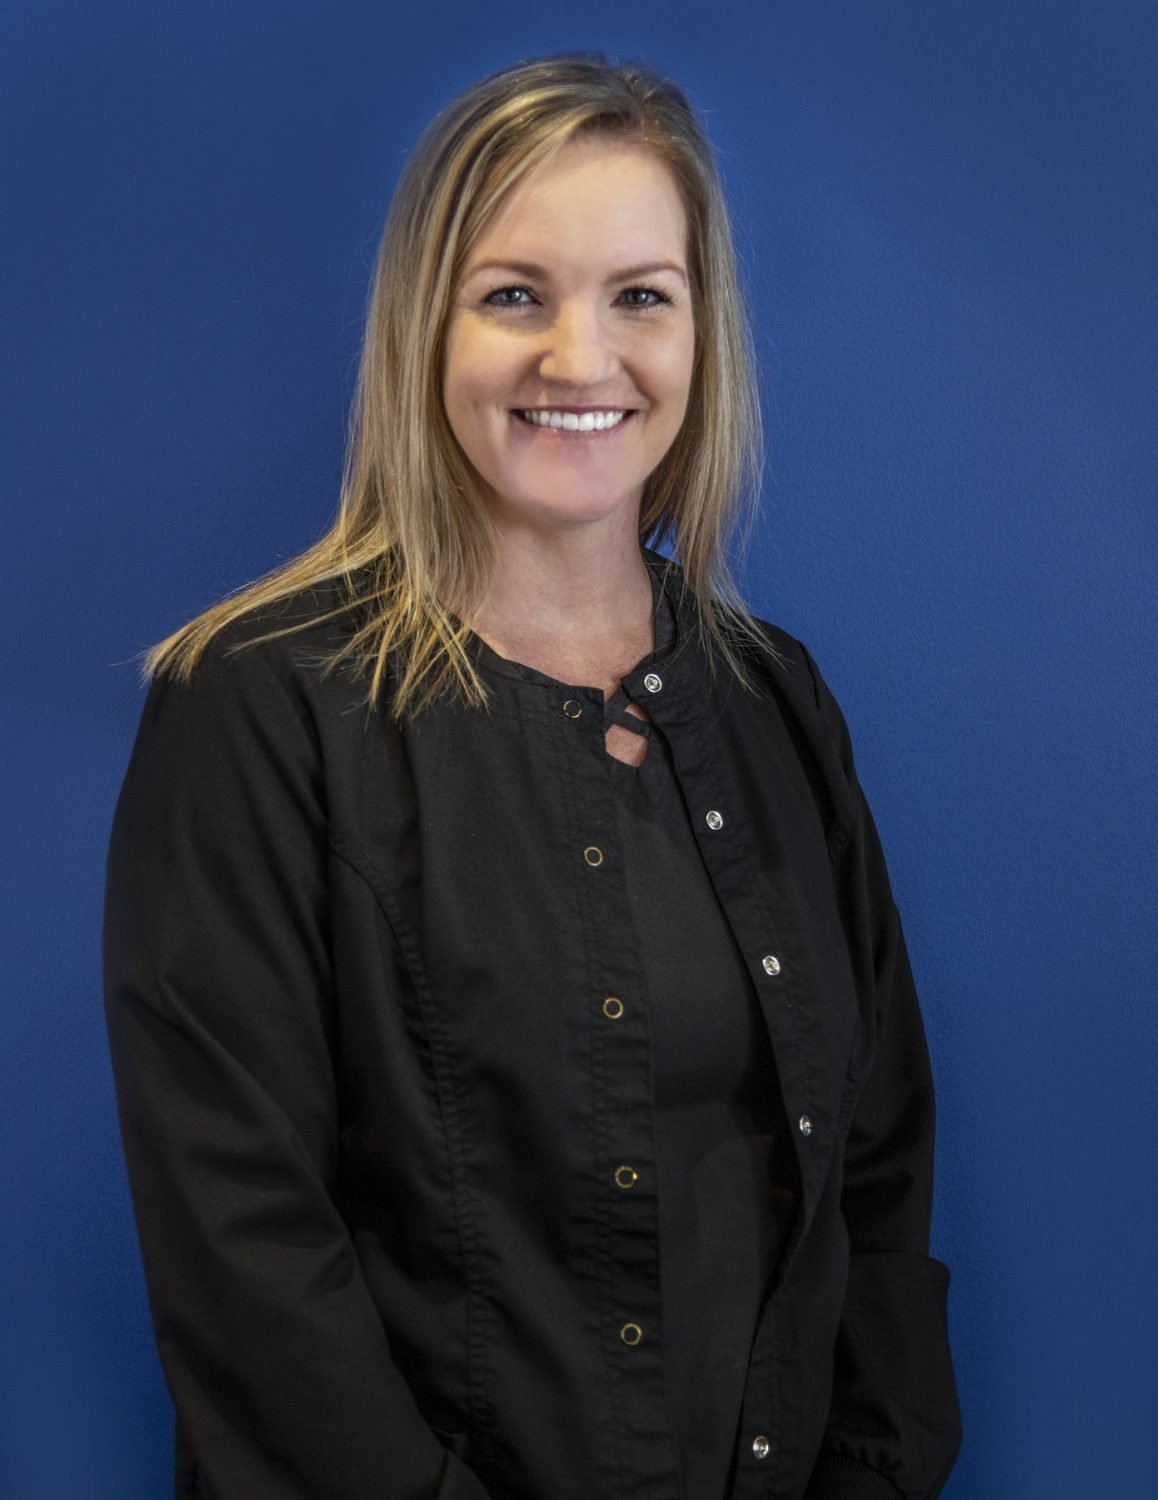 Christy Pirraglia, Business Manager